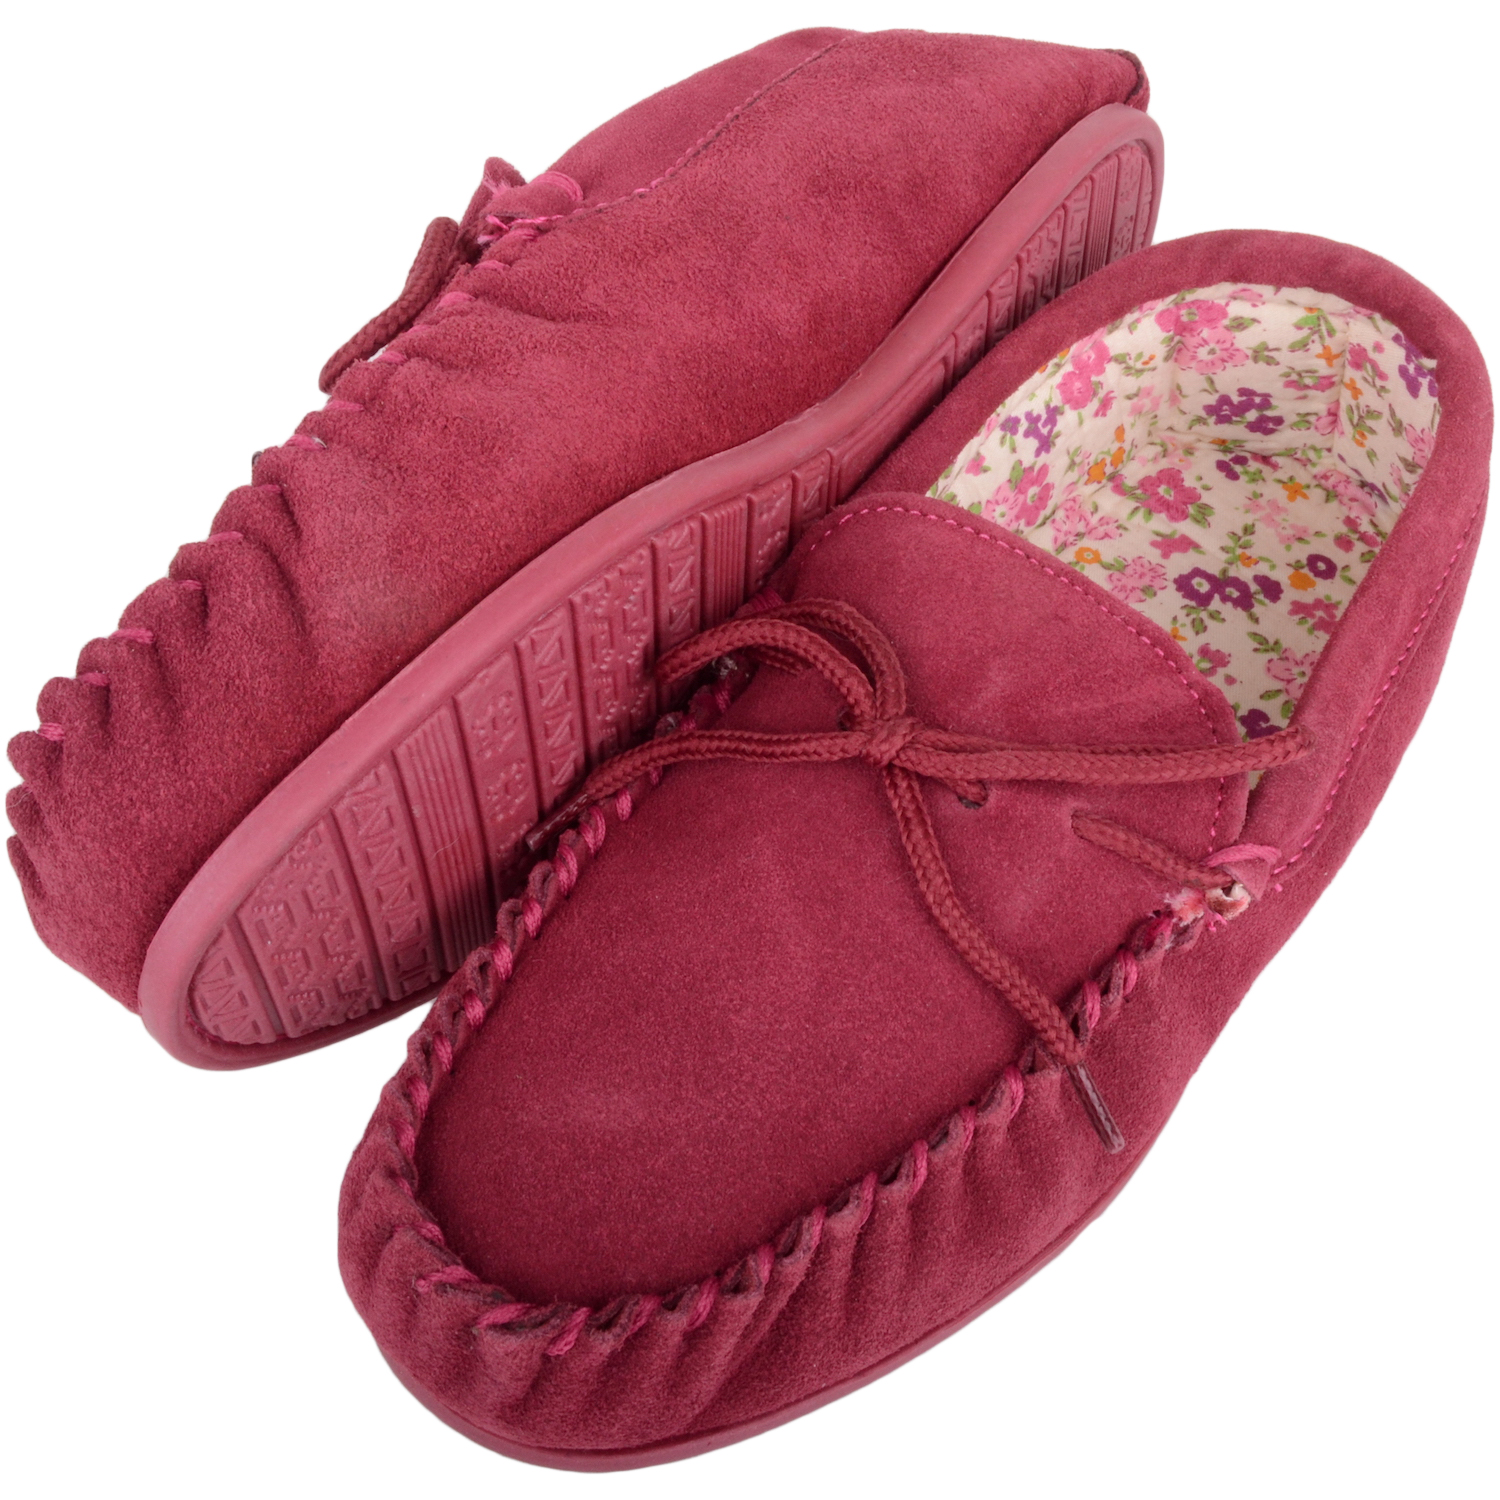 Snugrugs - Ladies Cotton Lined Suede Moccasins - Crimson